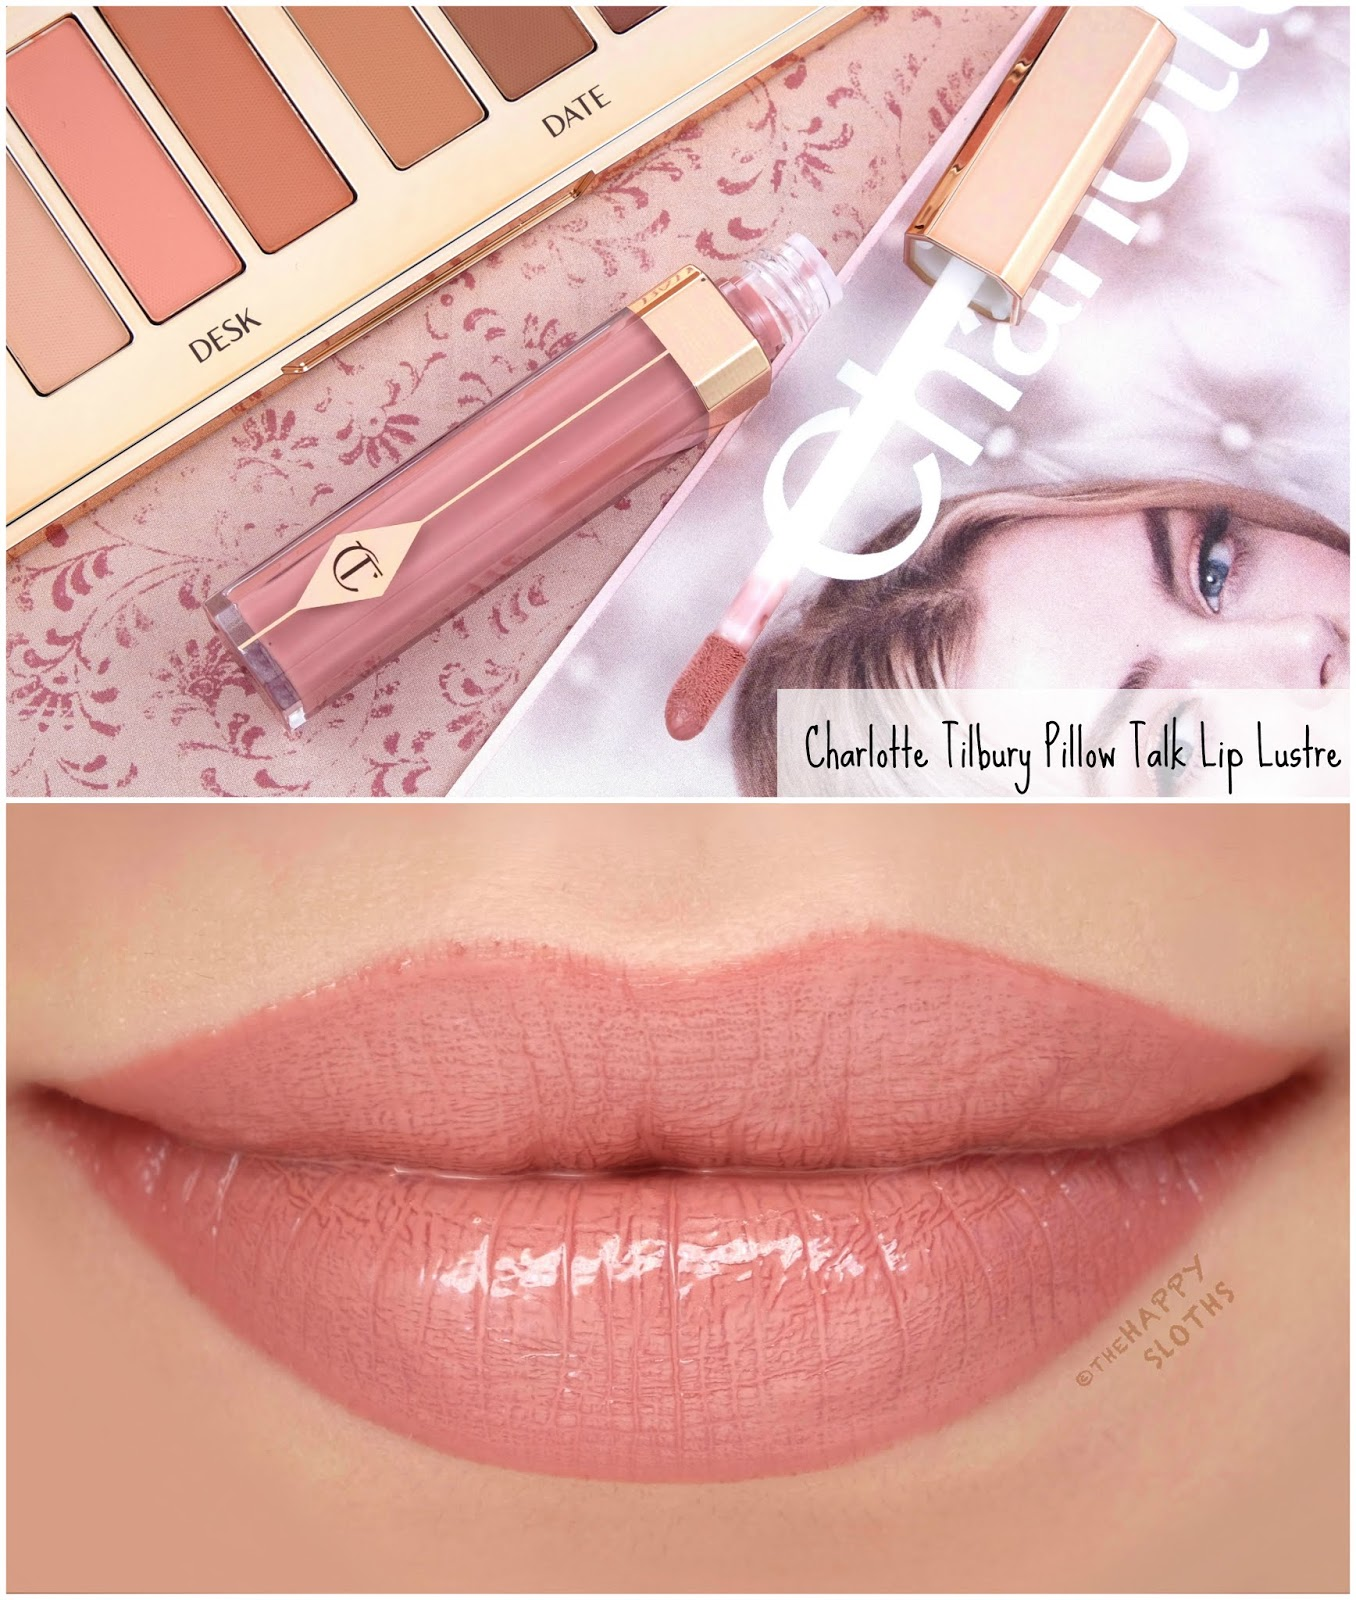 Charlotte Tilbury | Pillow Talk Lip Lustre: Review and Swatches